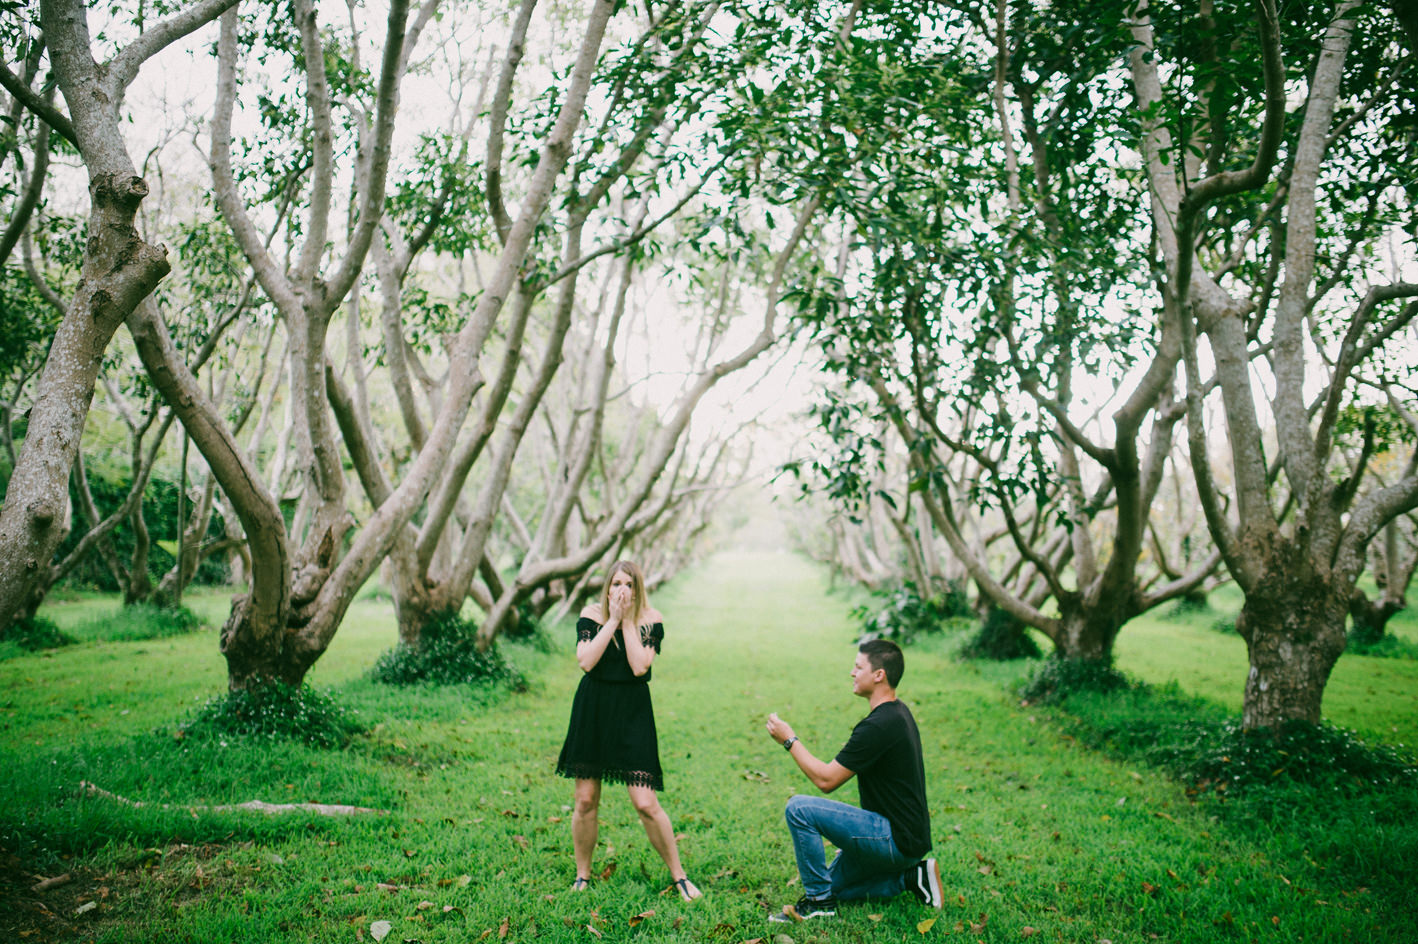 013-proposal-dan-ash_sophie-baker-photography